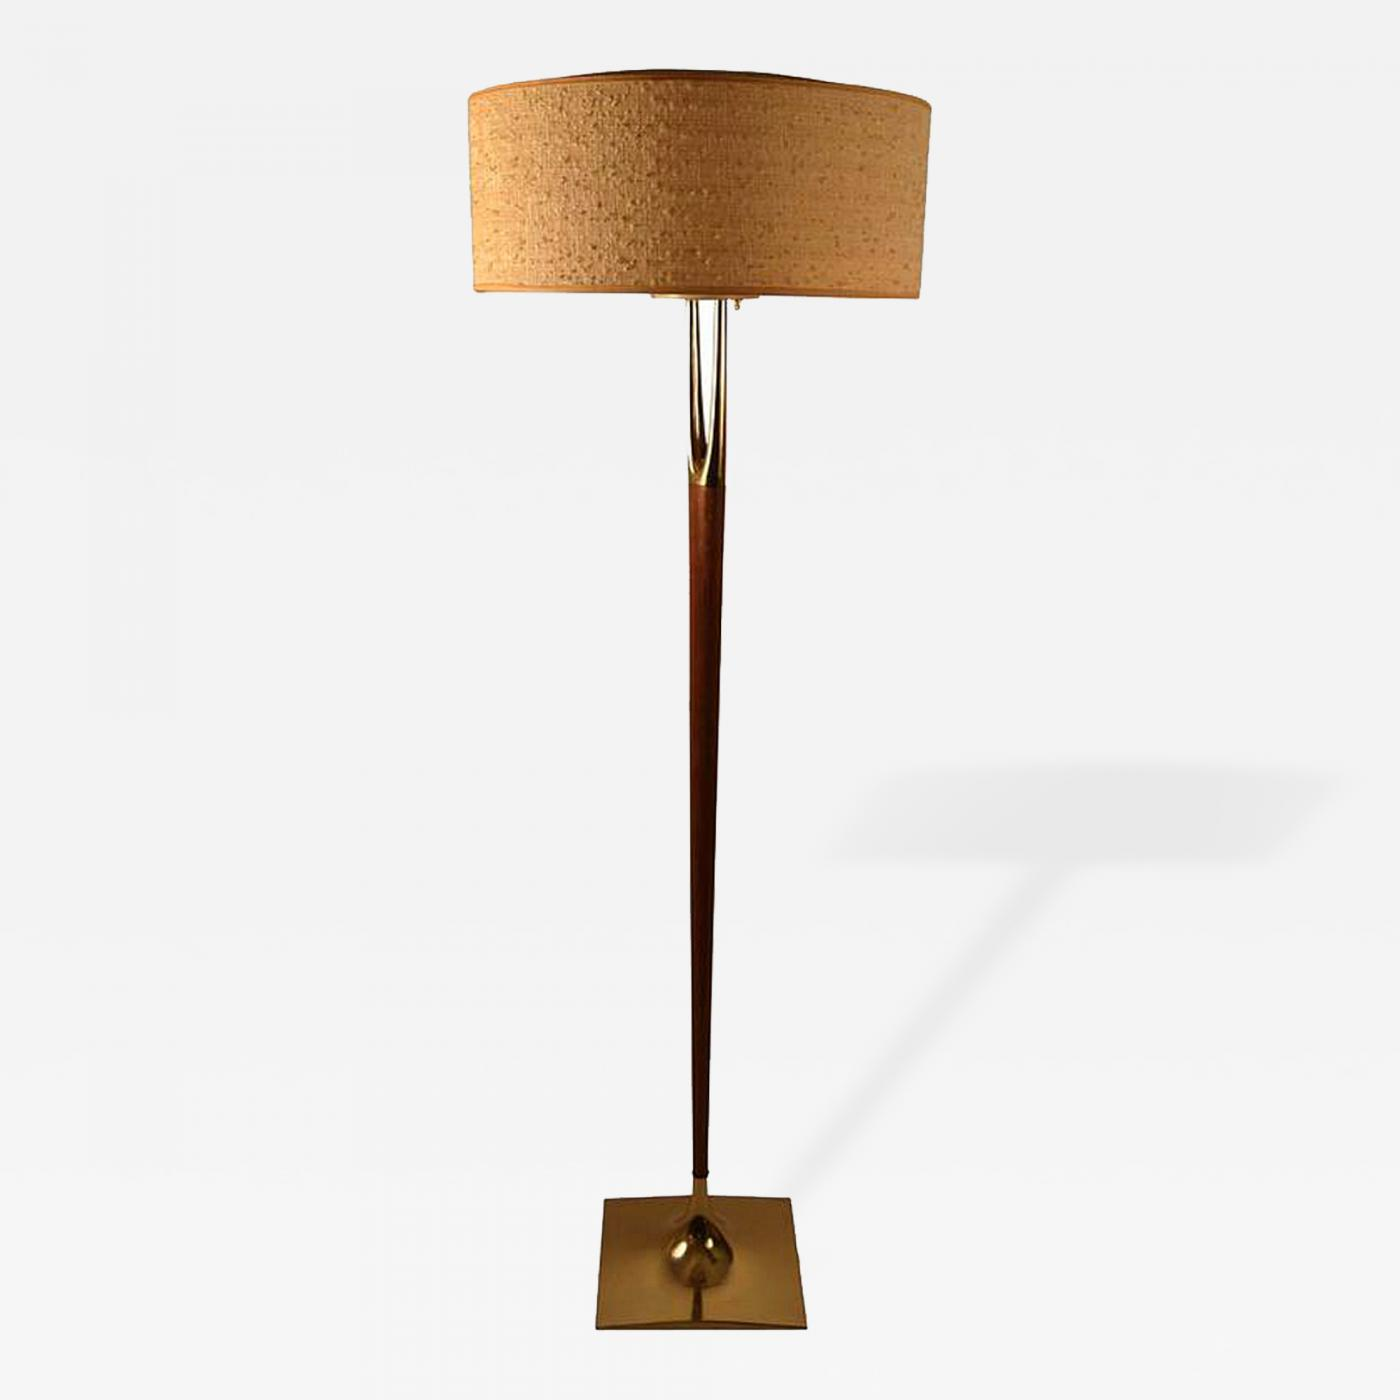 Laurel lamp company gerald thurston wishbone floor lamp for Lights company